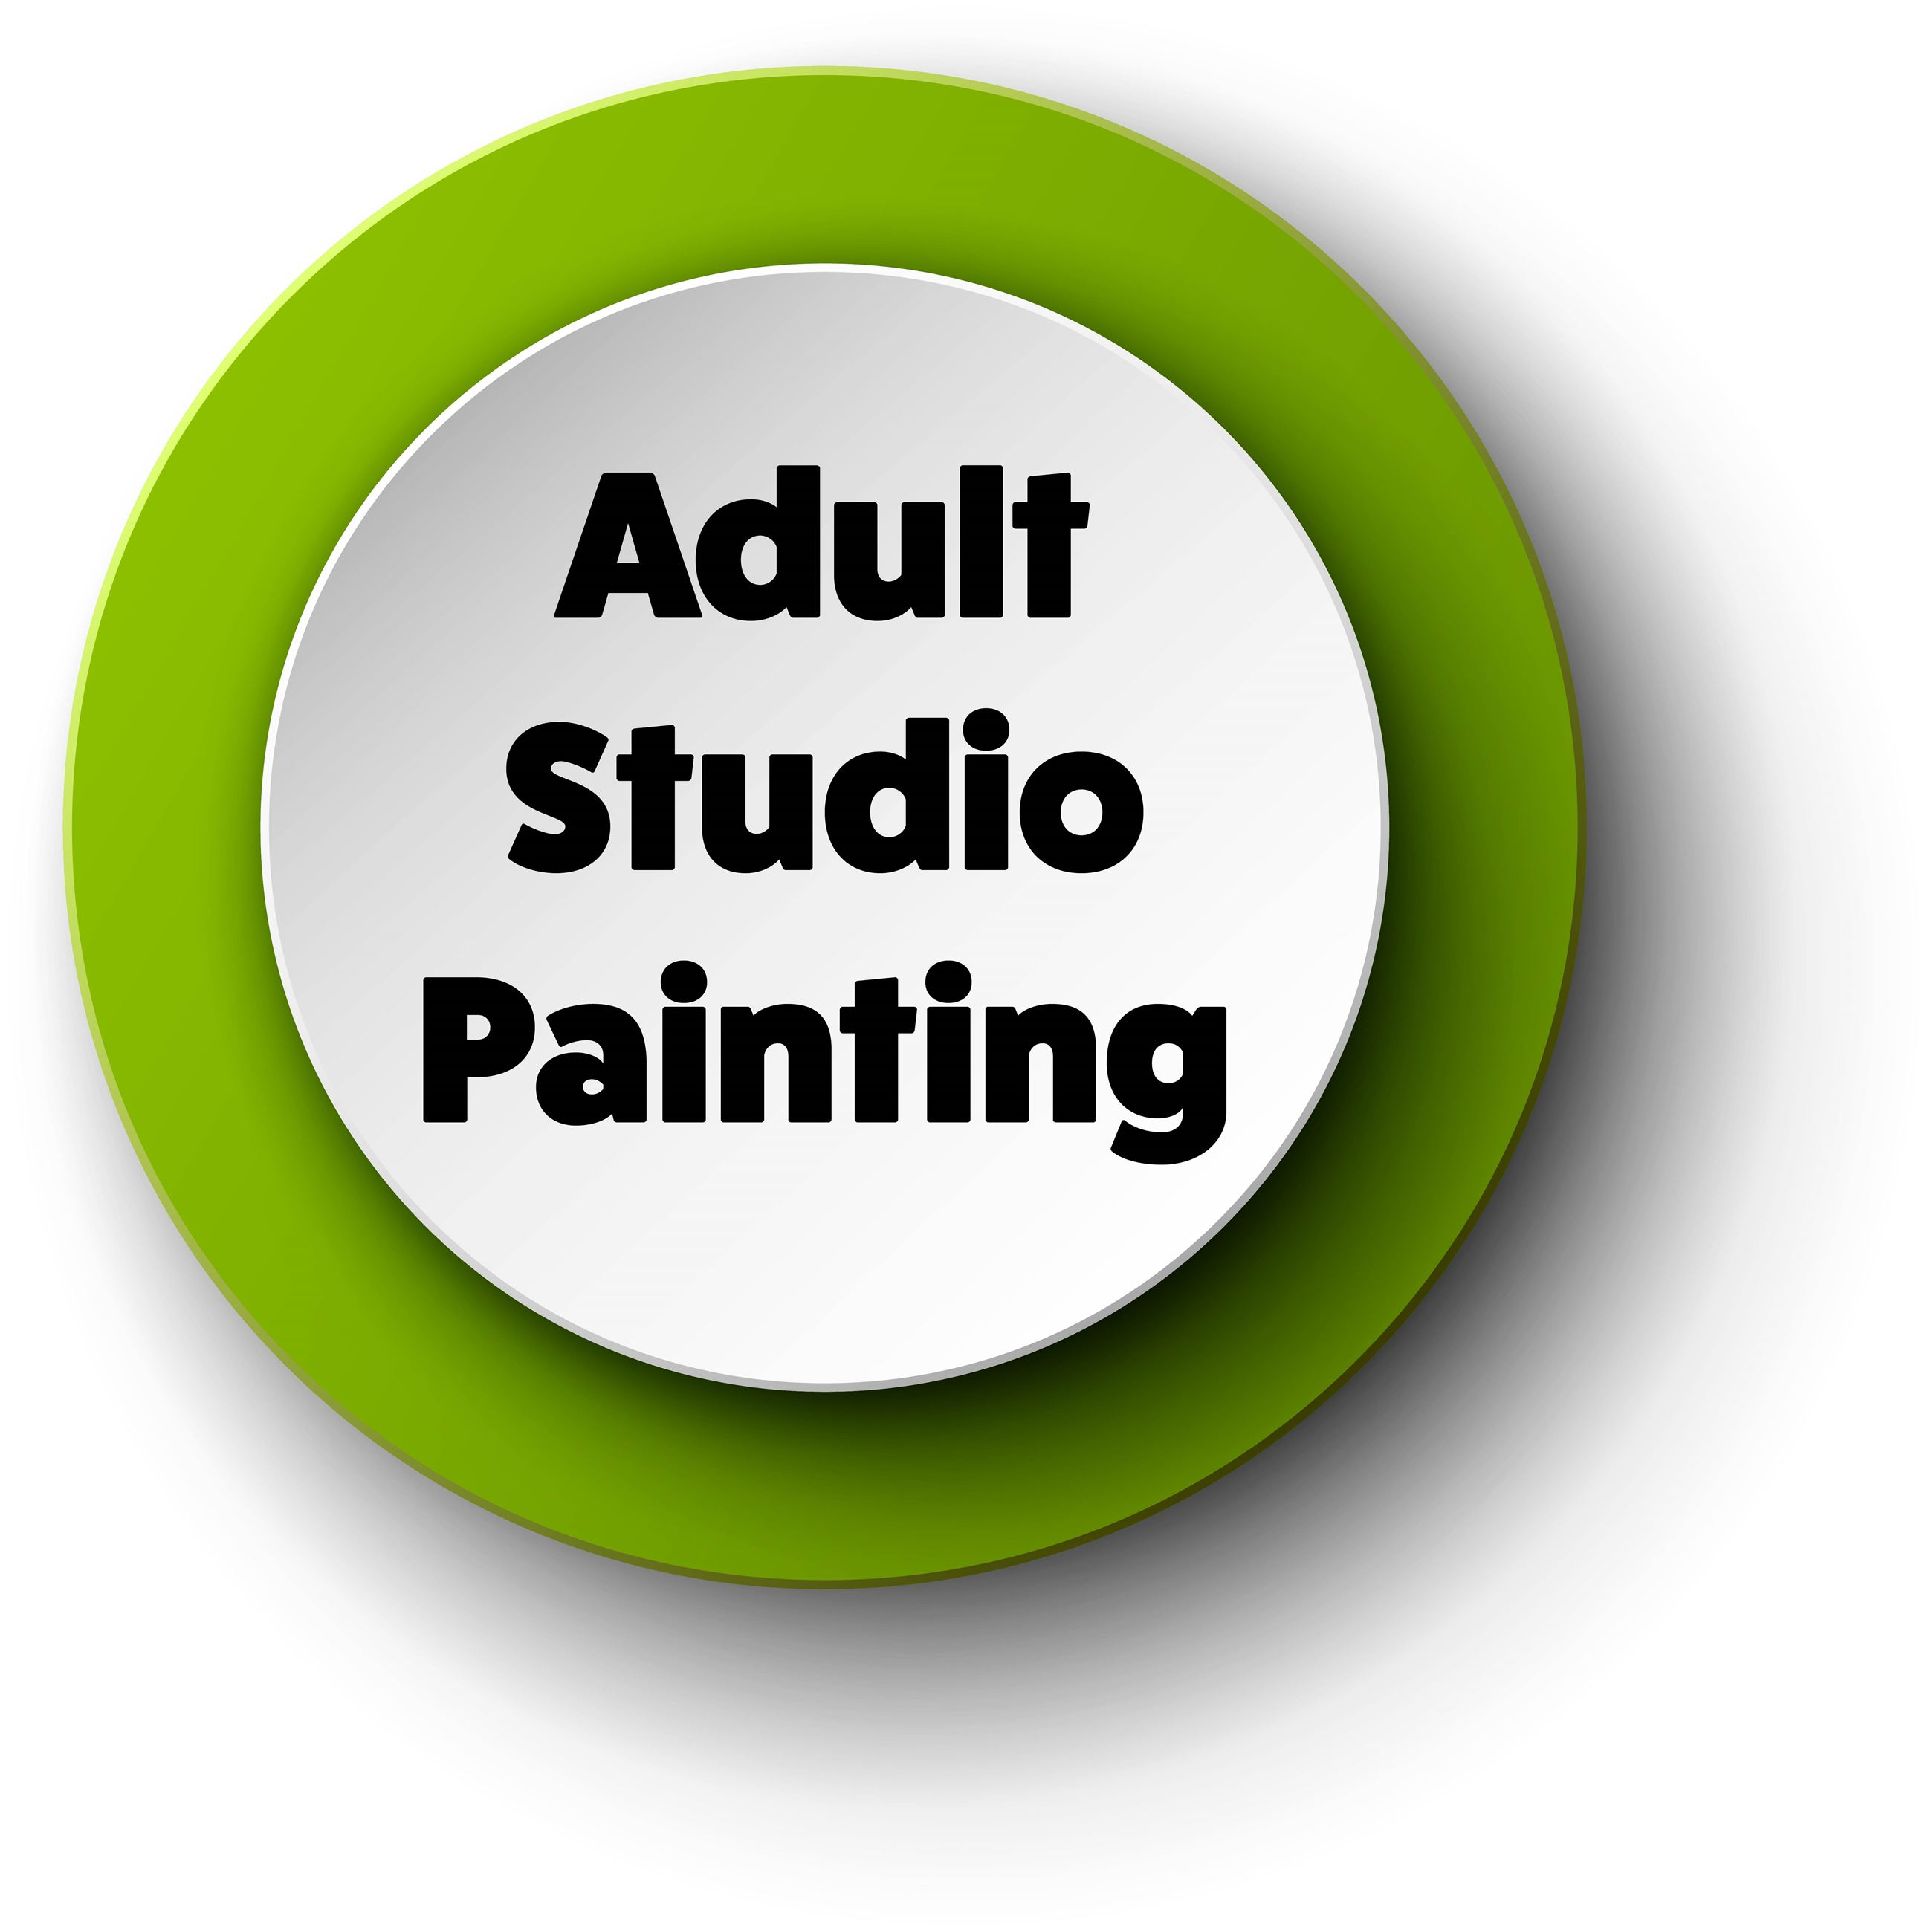 Adult Studio Painting